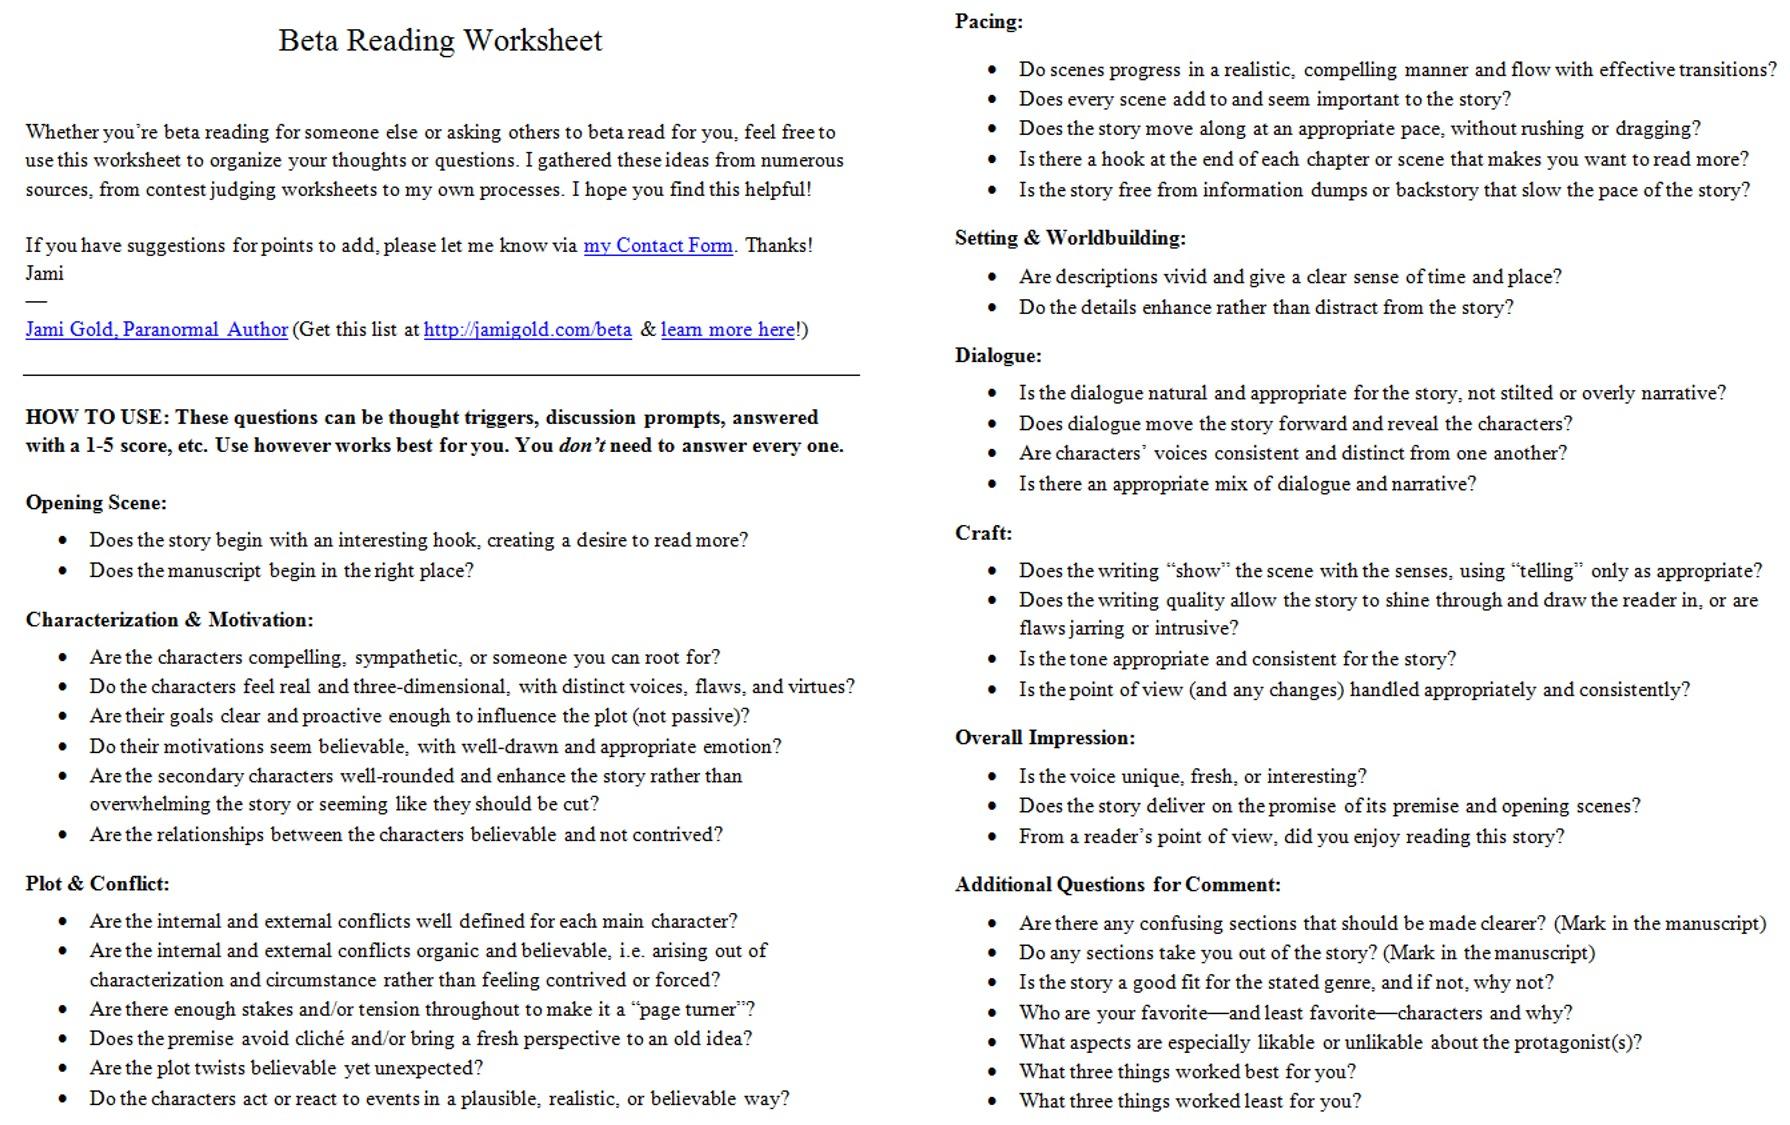 Weirdmailus  Fascinating Worksheets For Writers  Jami Gold Paranormal Author With Foxy Screen Shot Of The Twopage Beta Reading Worksheet With Amazing Tens And Ones Place Value Worksheets Also Fraction Basics Worksheet In Addition Hygiene For Kids Worksheets And Multiplication Assessment Worksheet As Well As Worksheets For Dividing Decimals Additionally Kg Maths Worksheets From Jamigoldcom With Weirdmailus  Foxy Worksheets For Writers  Jami Gold Paranormal Author With Amazing Screen Shot Of The Twopage Beta Reading Worksheet And Fascinating Tens And Ones Place Value Worksheets Also Fraction Basics Worksheet In Addition Hygiene For Kids Worksheets From Jamigoldcom